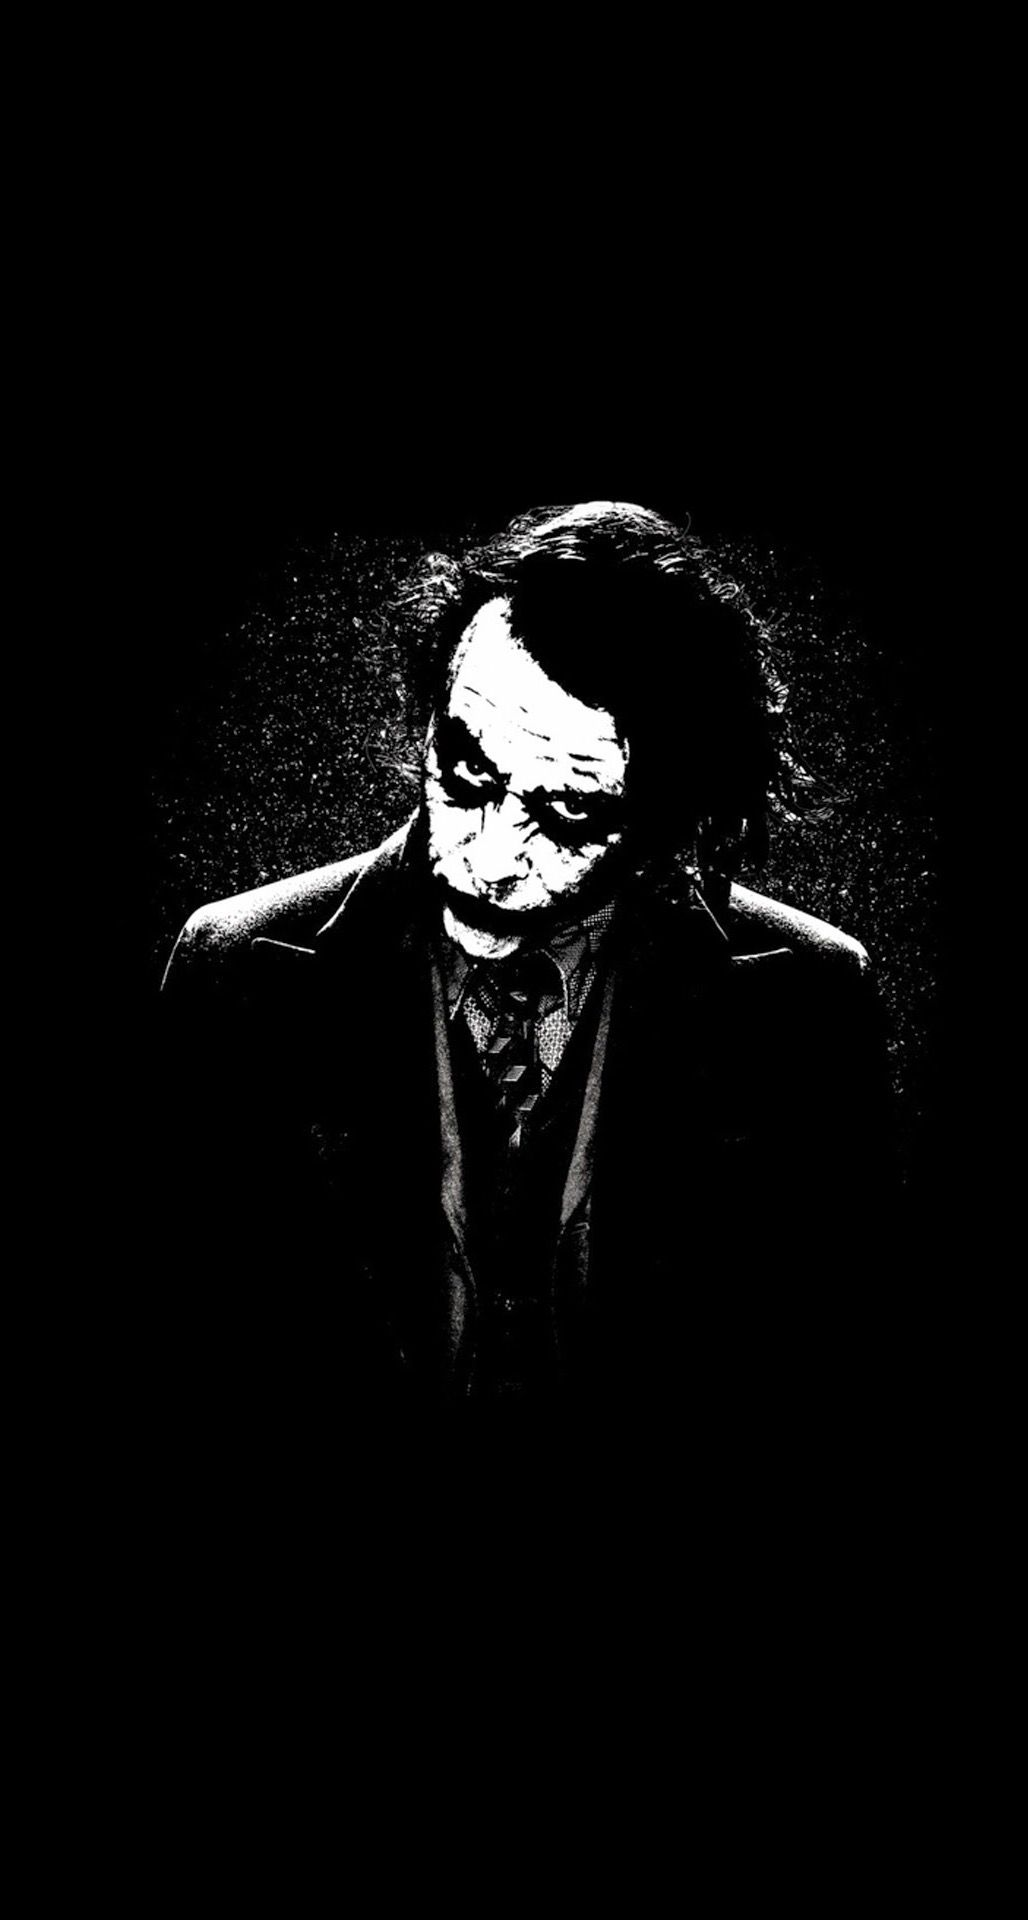 The Joker Batman Black White Iphone 6 Plus Hd Wallpaper The Joker